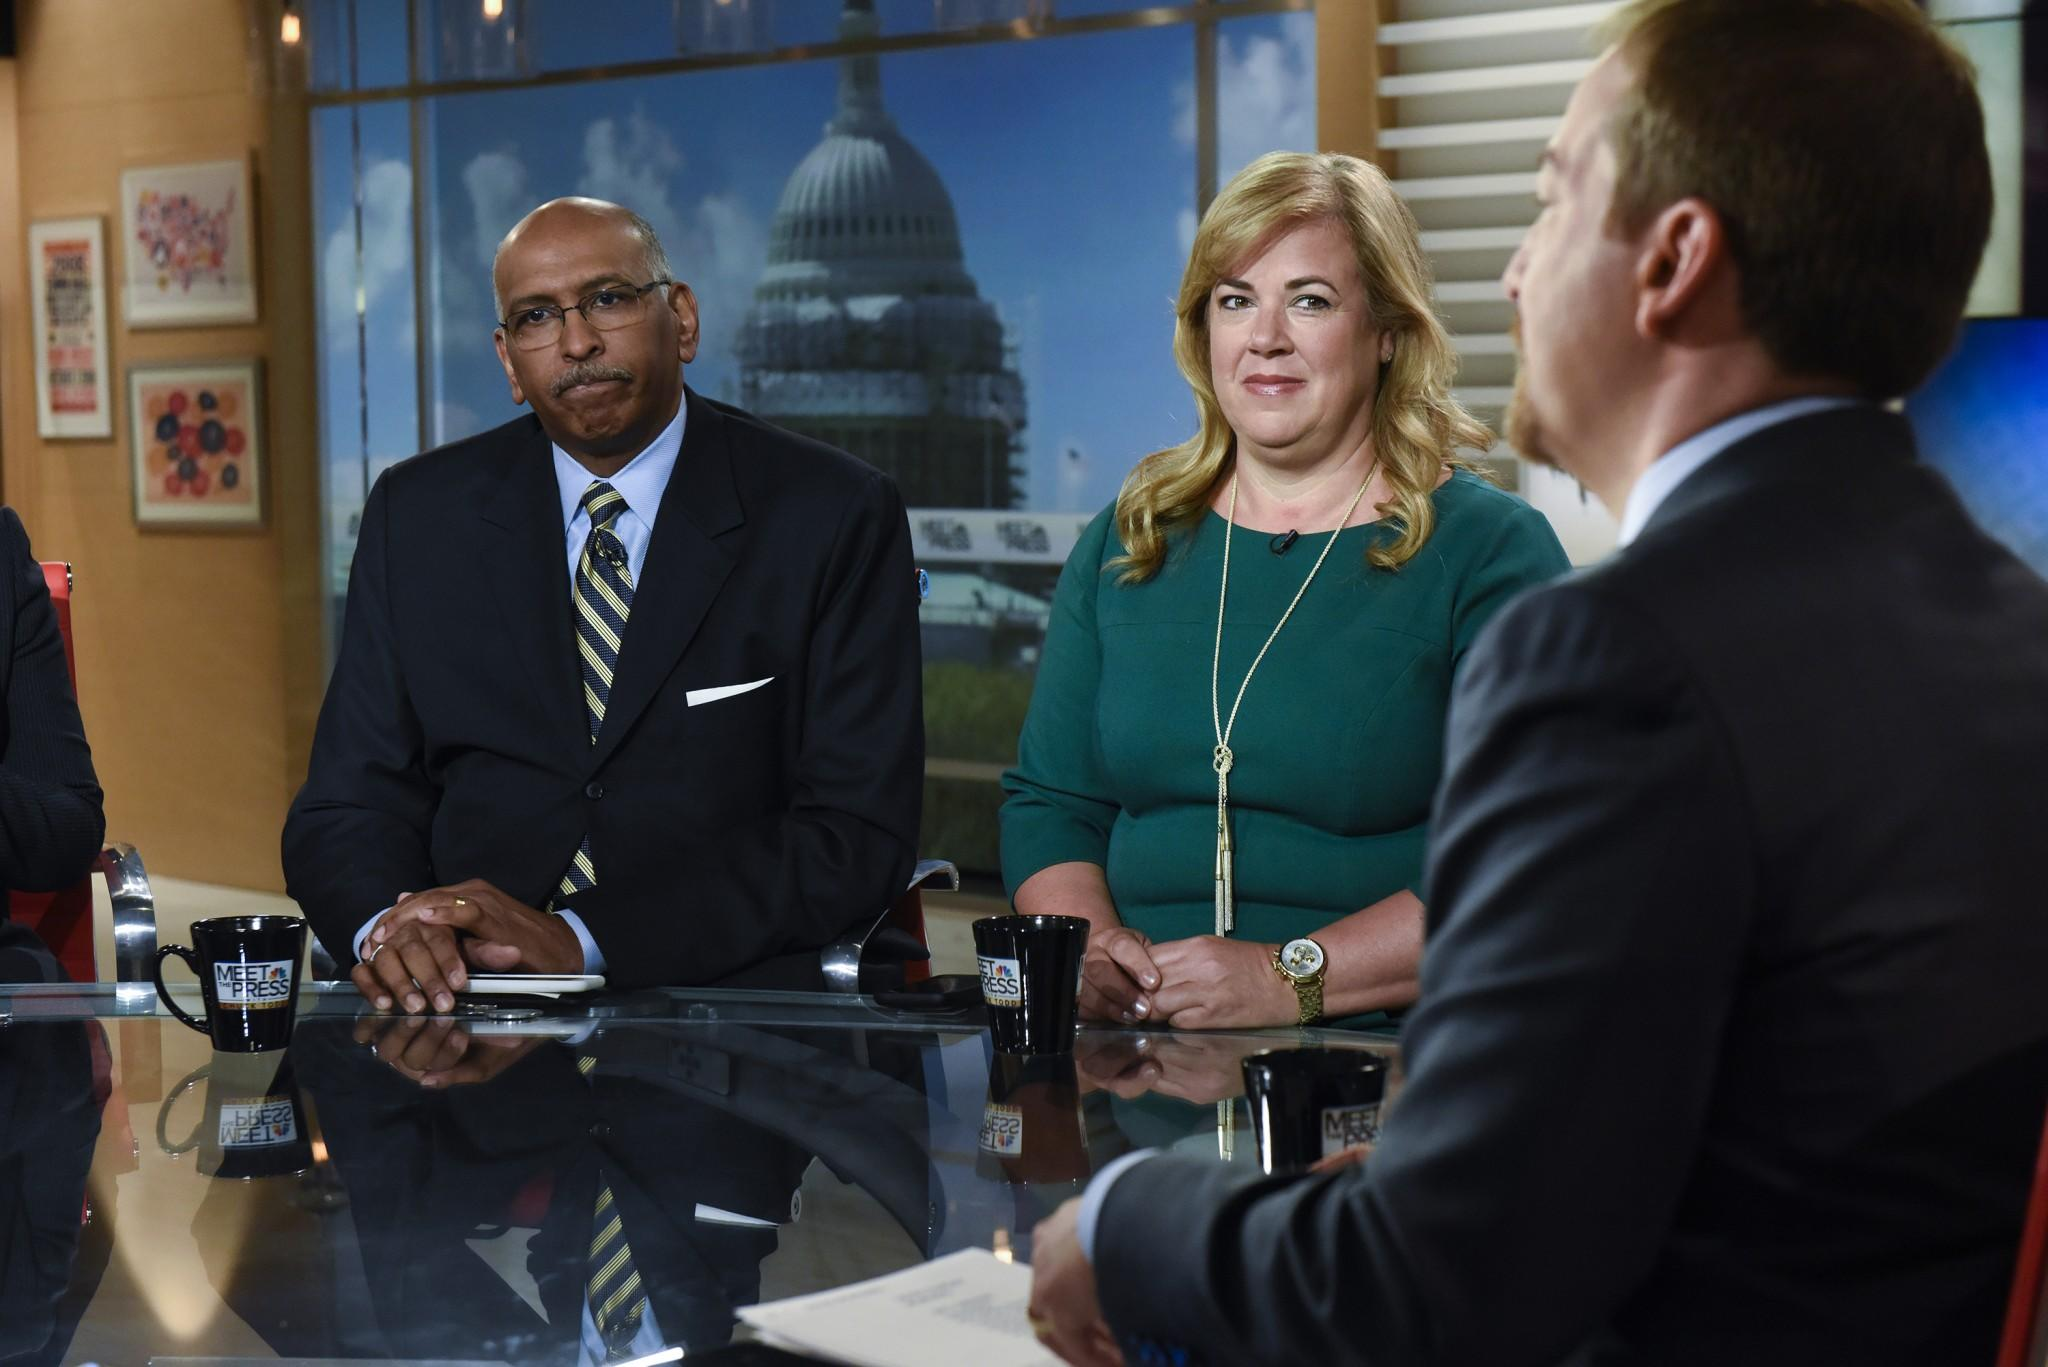 Former chair of the Republican National Committee Michael Steele, chair of Our Principles PAC Katie Packer and moderator Chuck Todd appear on